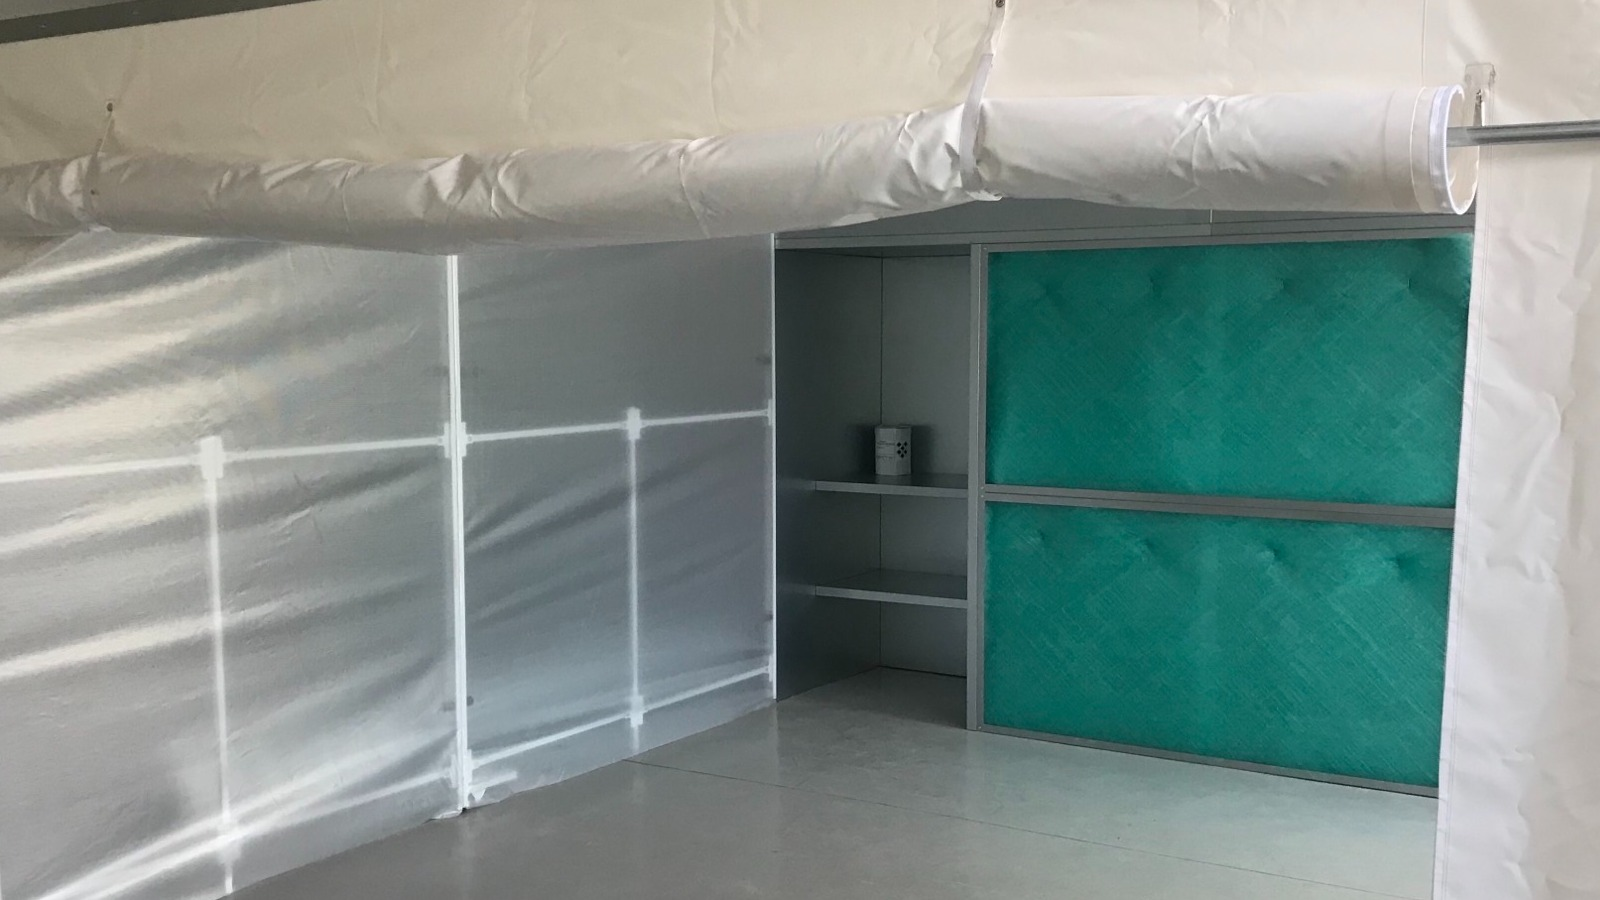 Image of Spray Booth